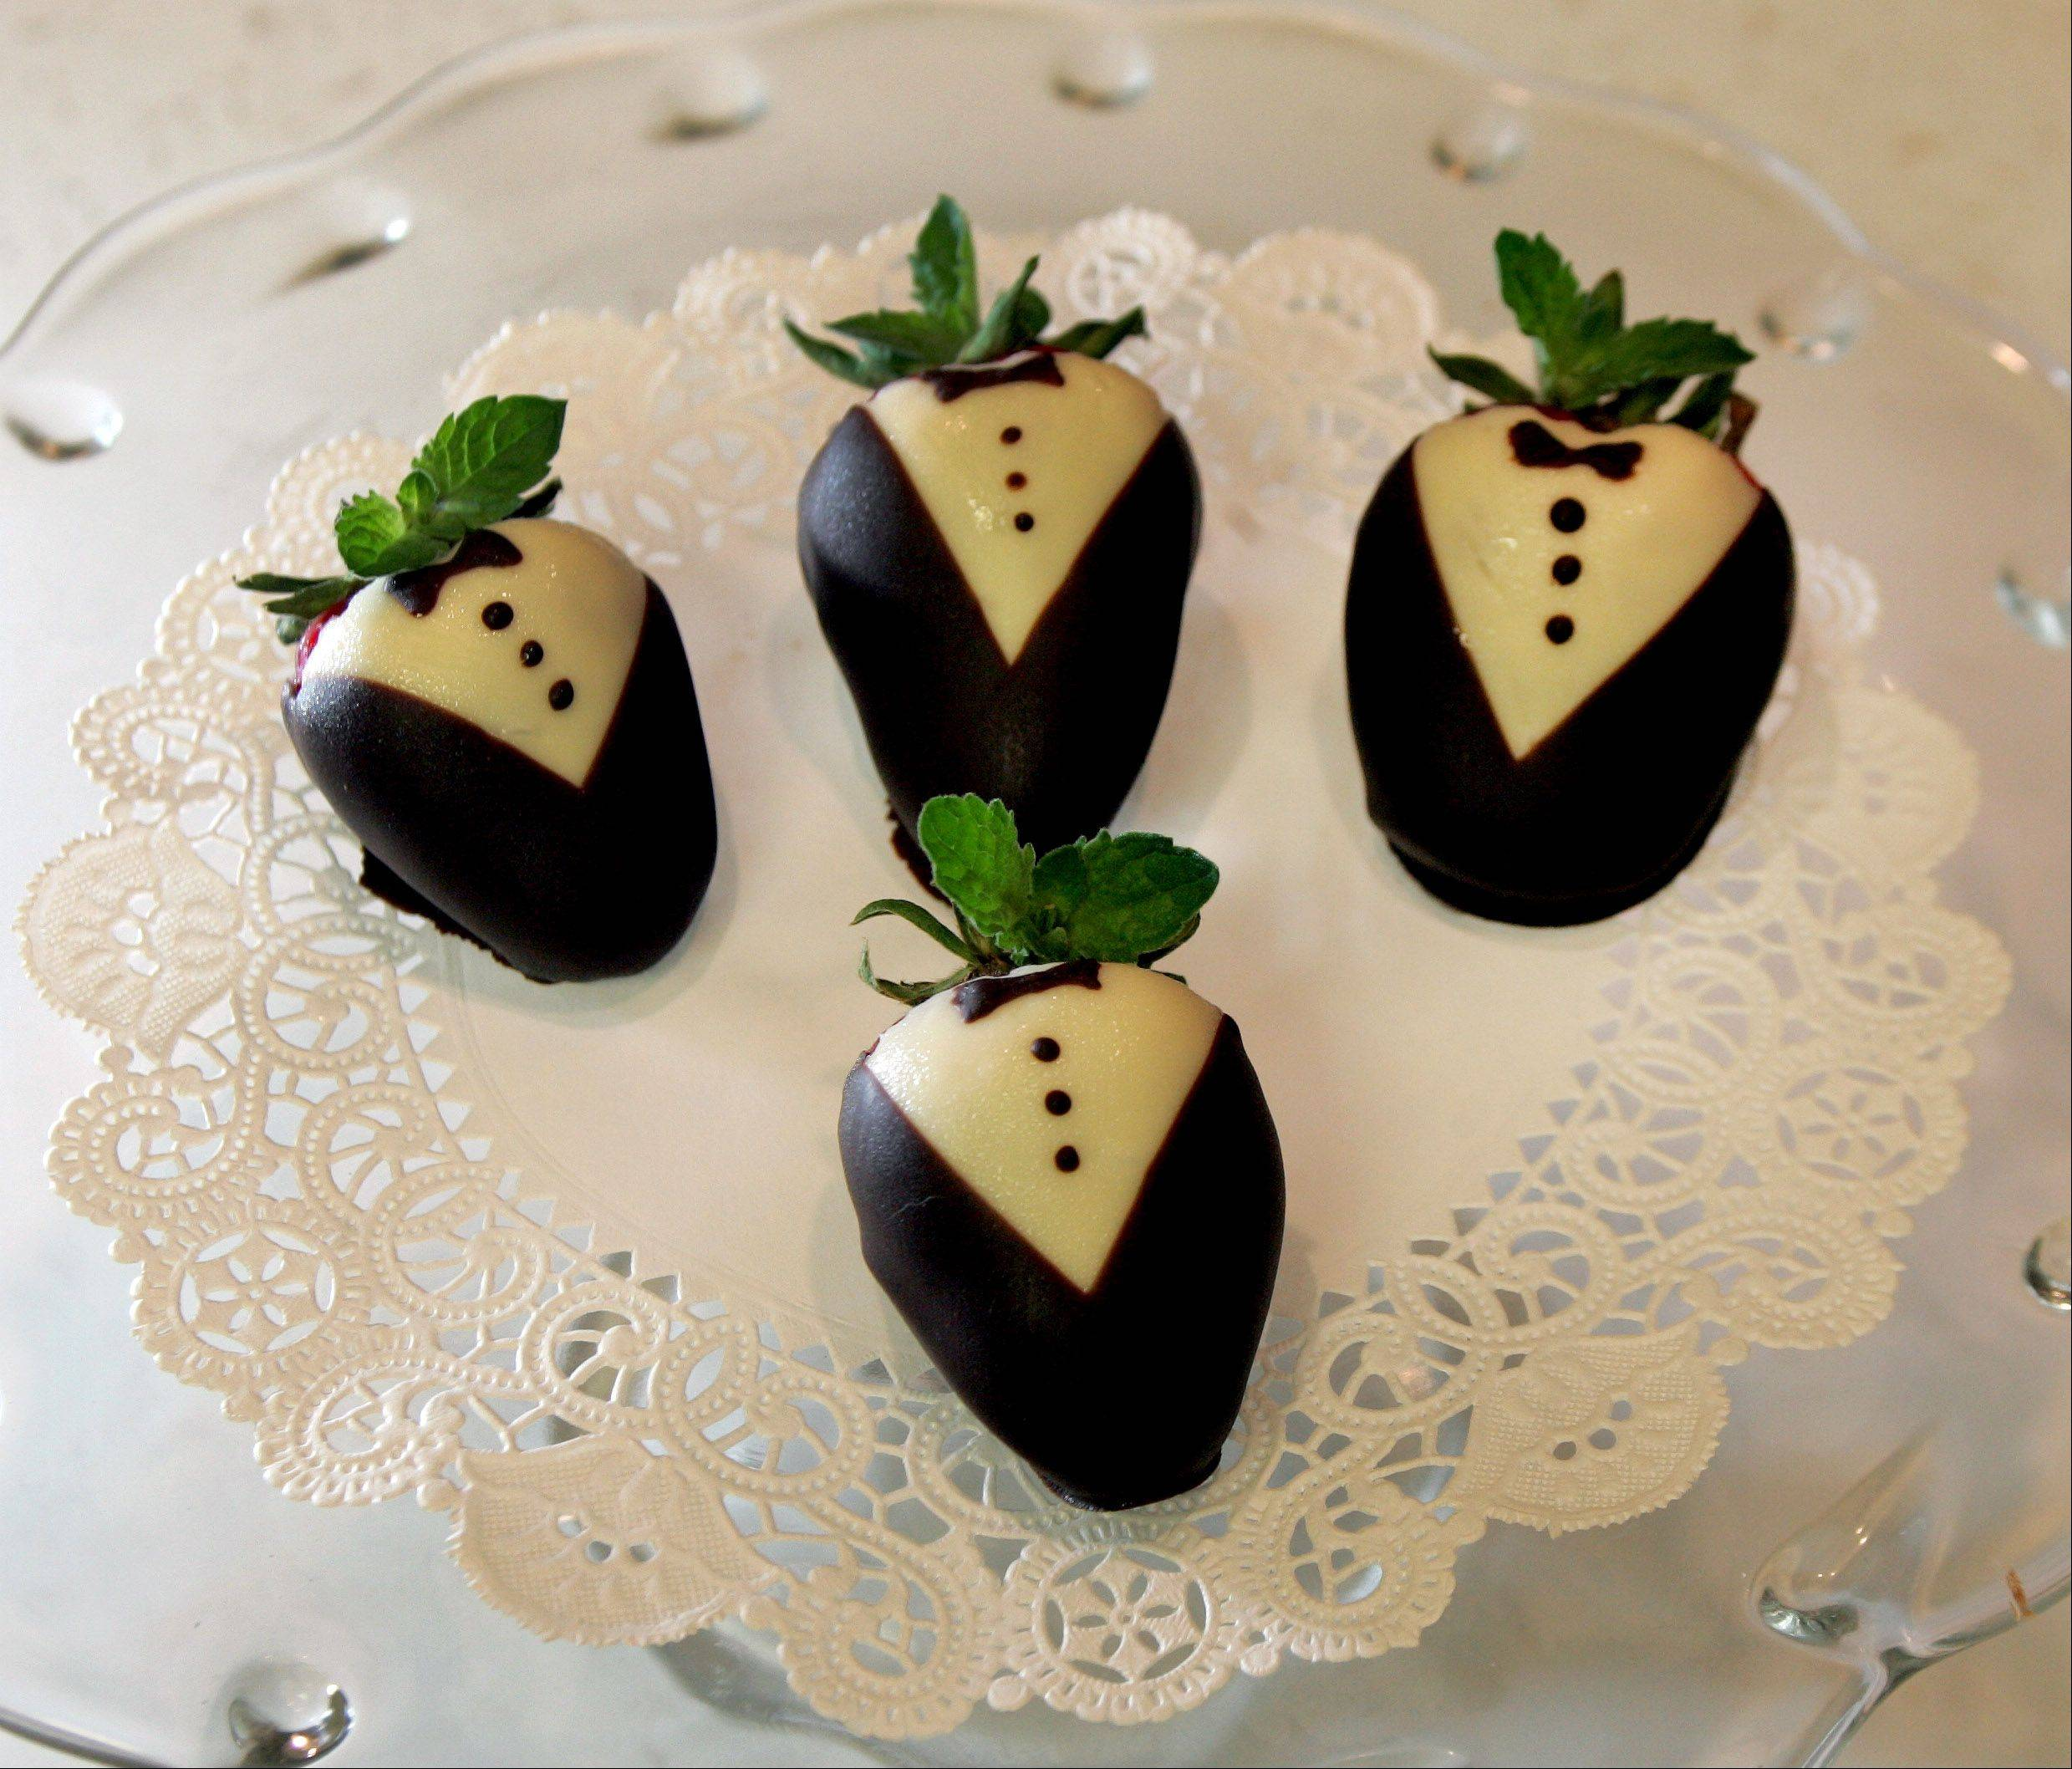 Tuxedo strawberries are an elegant, fresh-fruit treat for summer entertaining.